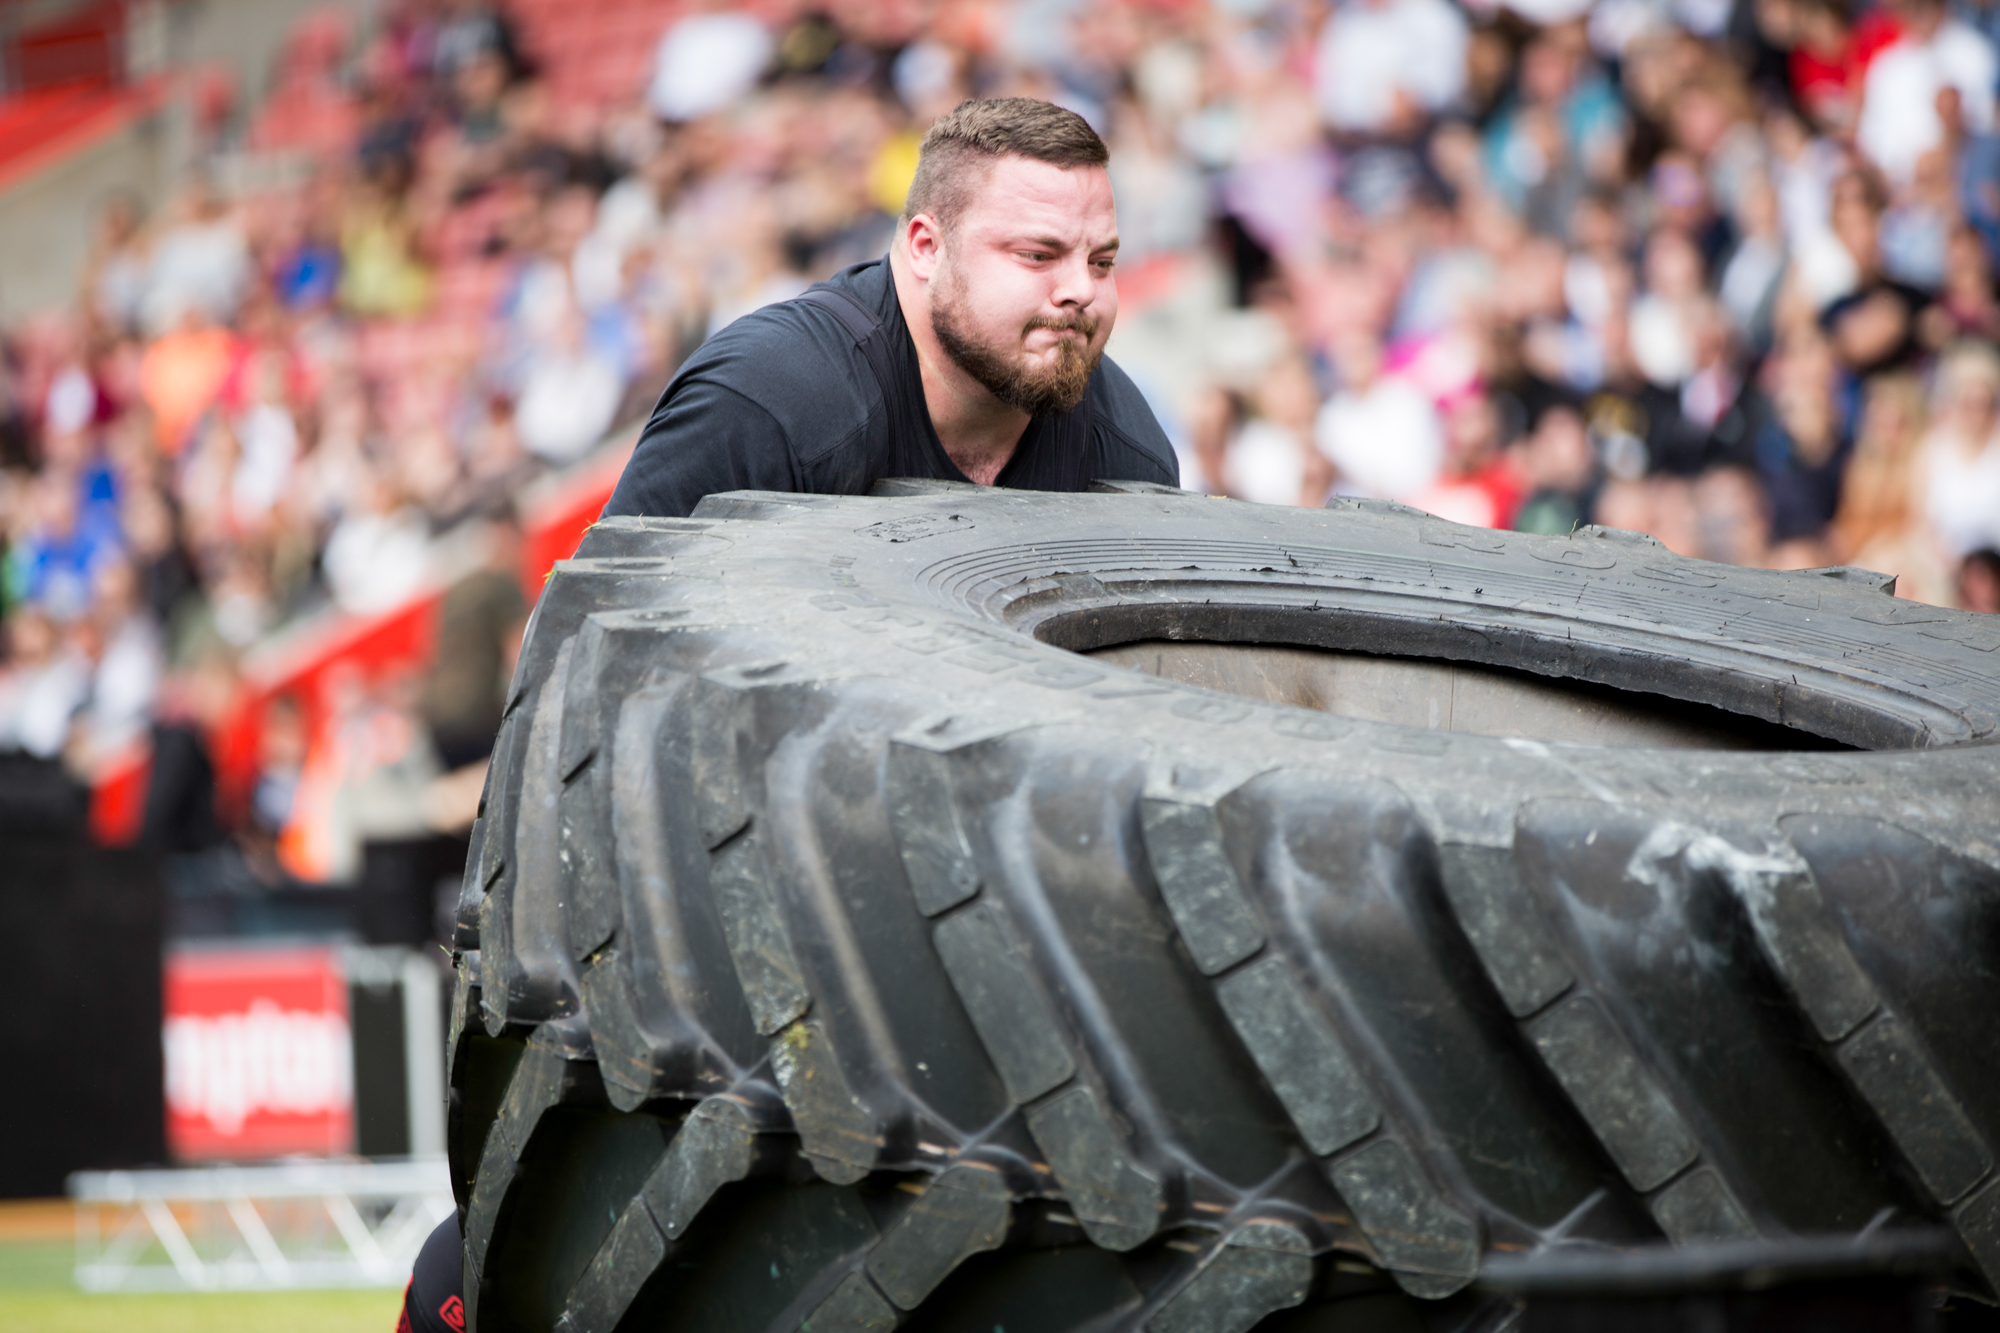 Matjaz Belsak, Ultimate Strongman Summermania 2017